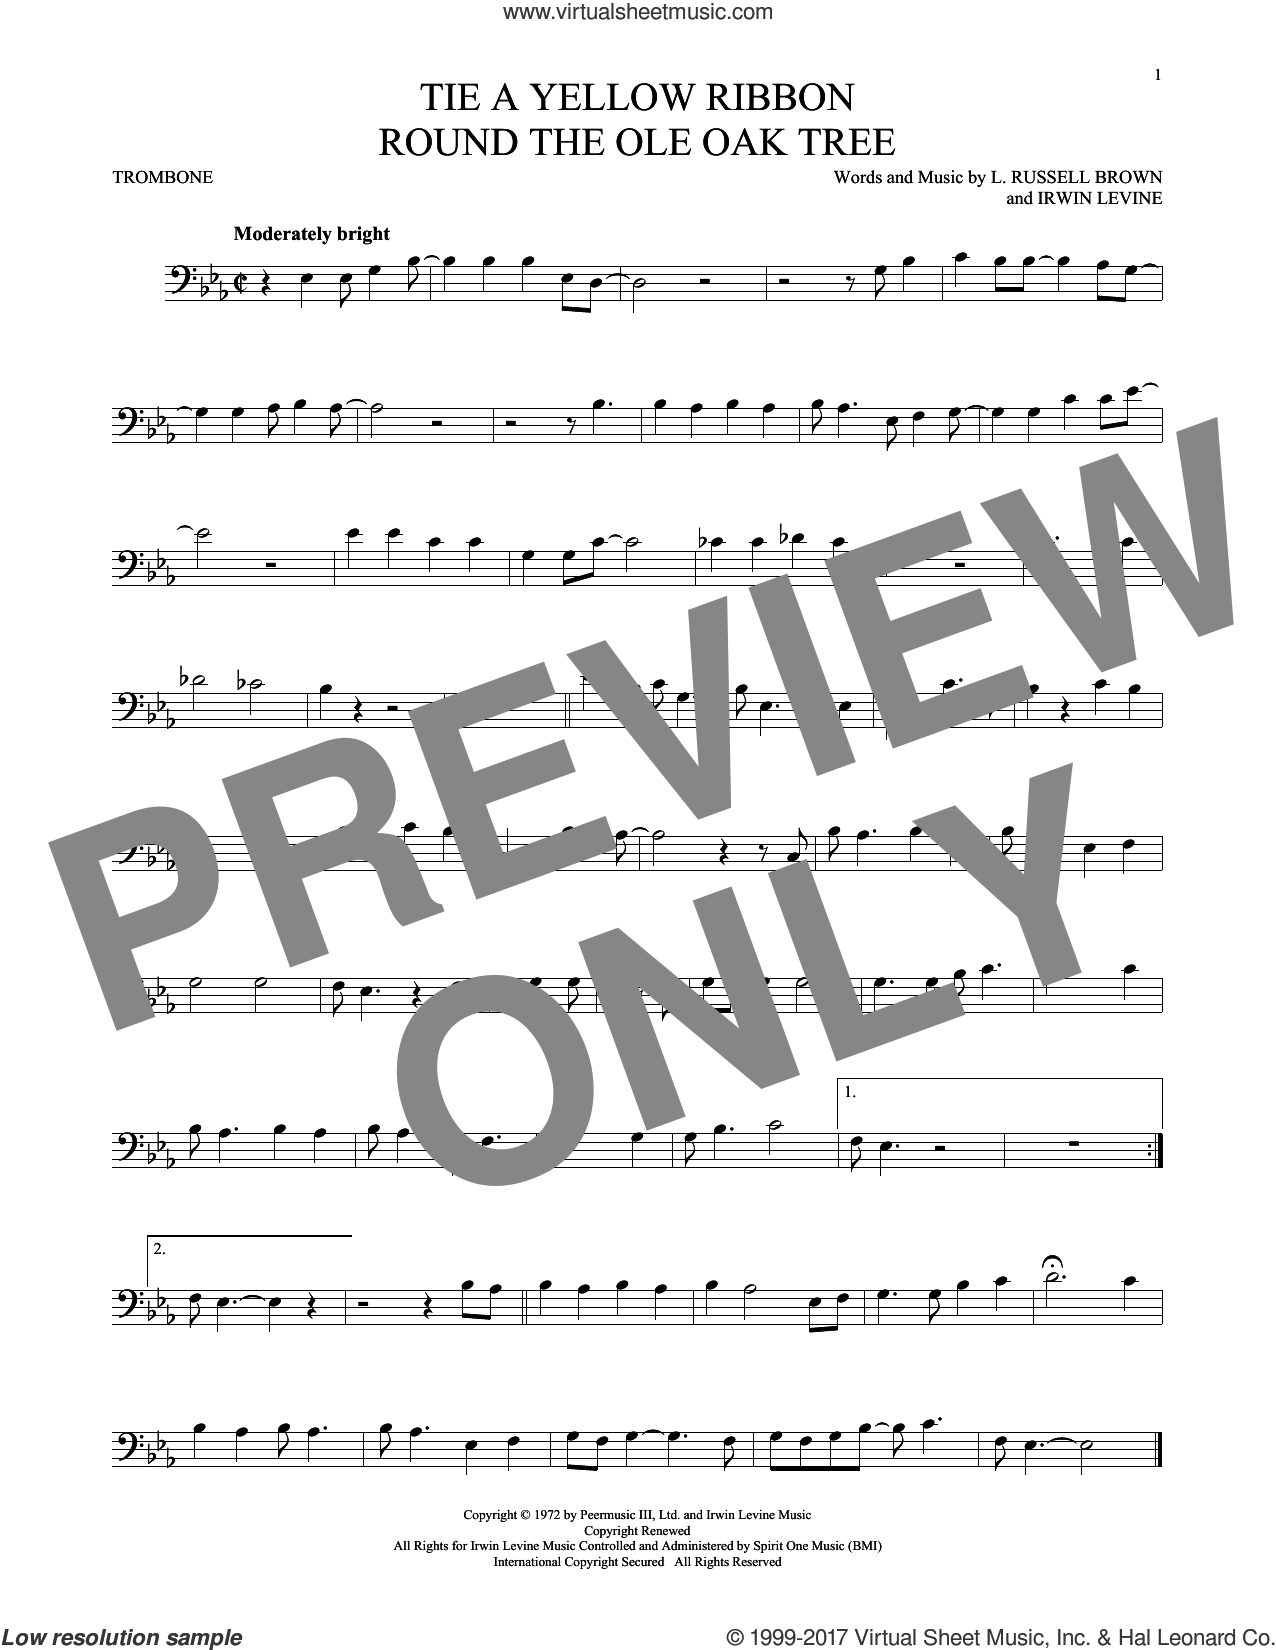 Tie A Yellow Ribbon Round The Ole Oak Tree sheet music for trombone solo by Dawn featuring Tony Orlando, Irwin Levine and L. Russell Brown, intermediate skill level